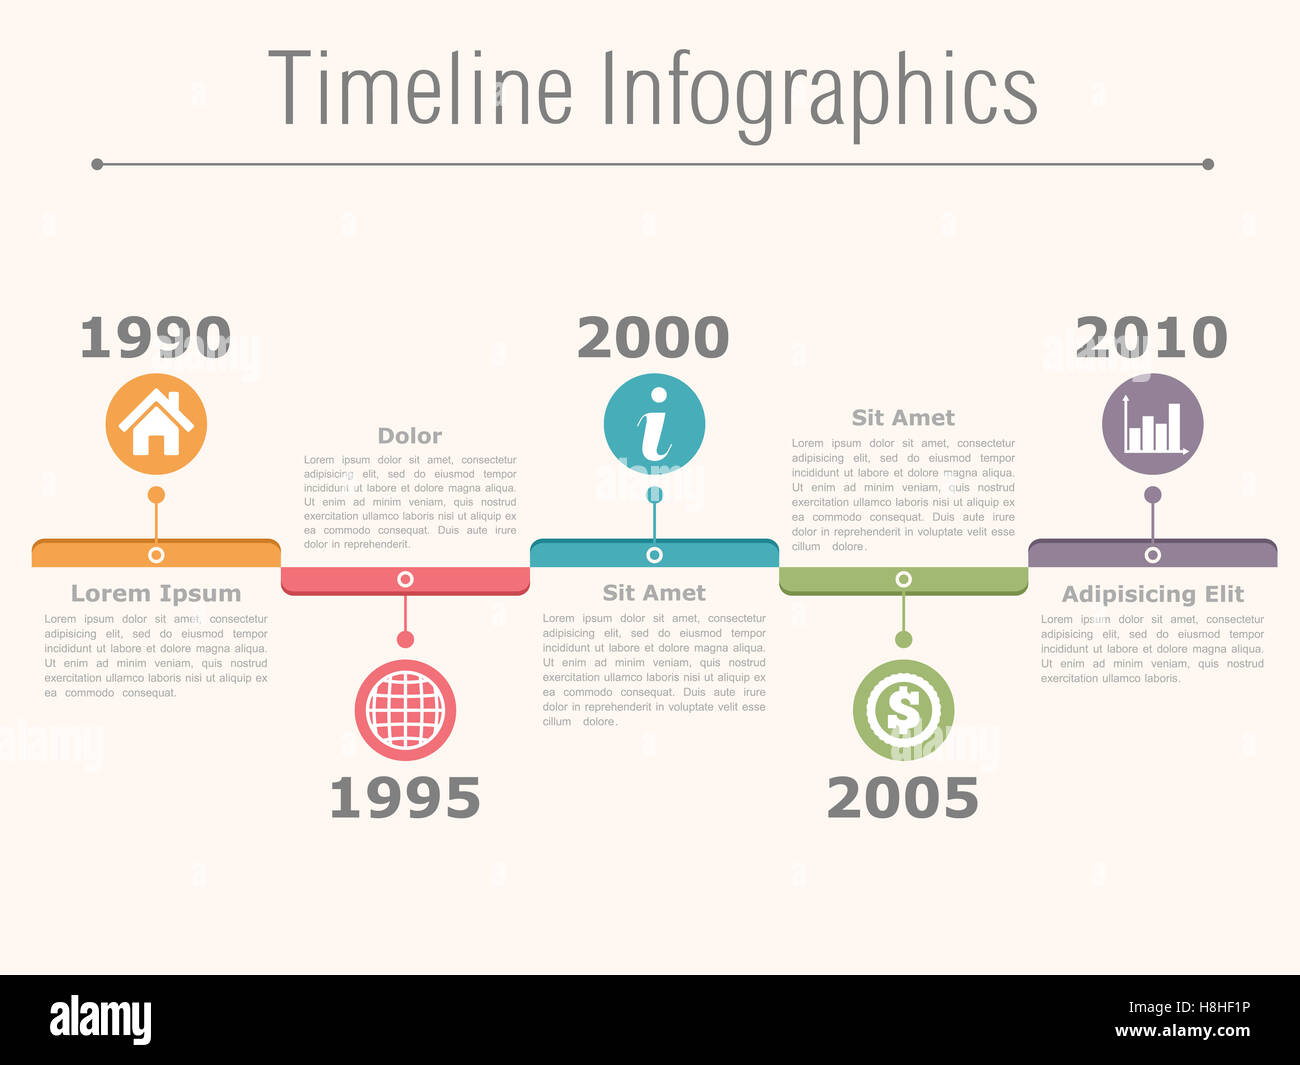 Timeline Infographics Design Template With Dates Icons And Text - Timeline design template